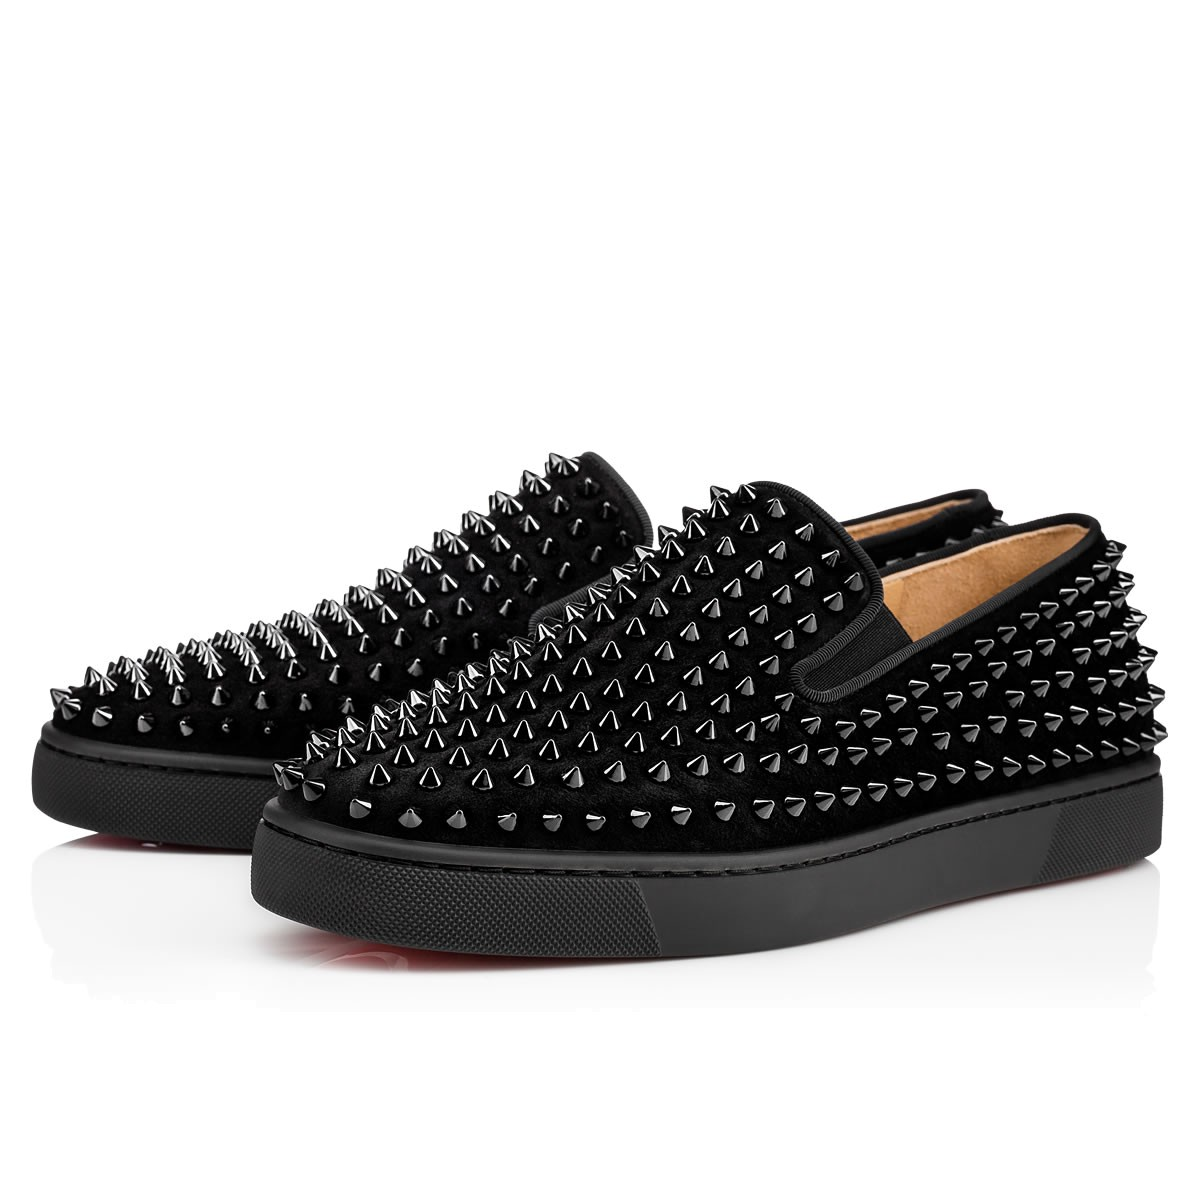 Christian Louboutin Spiked Slip-On Sneakers